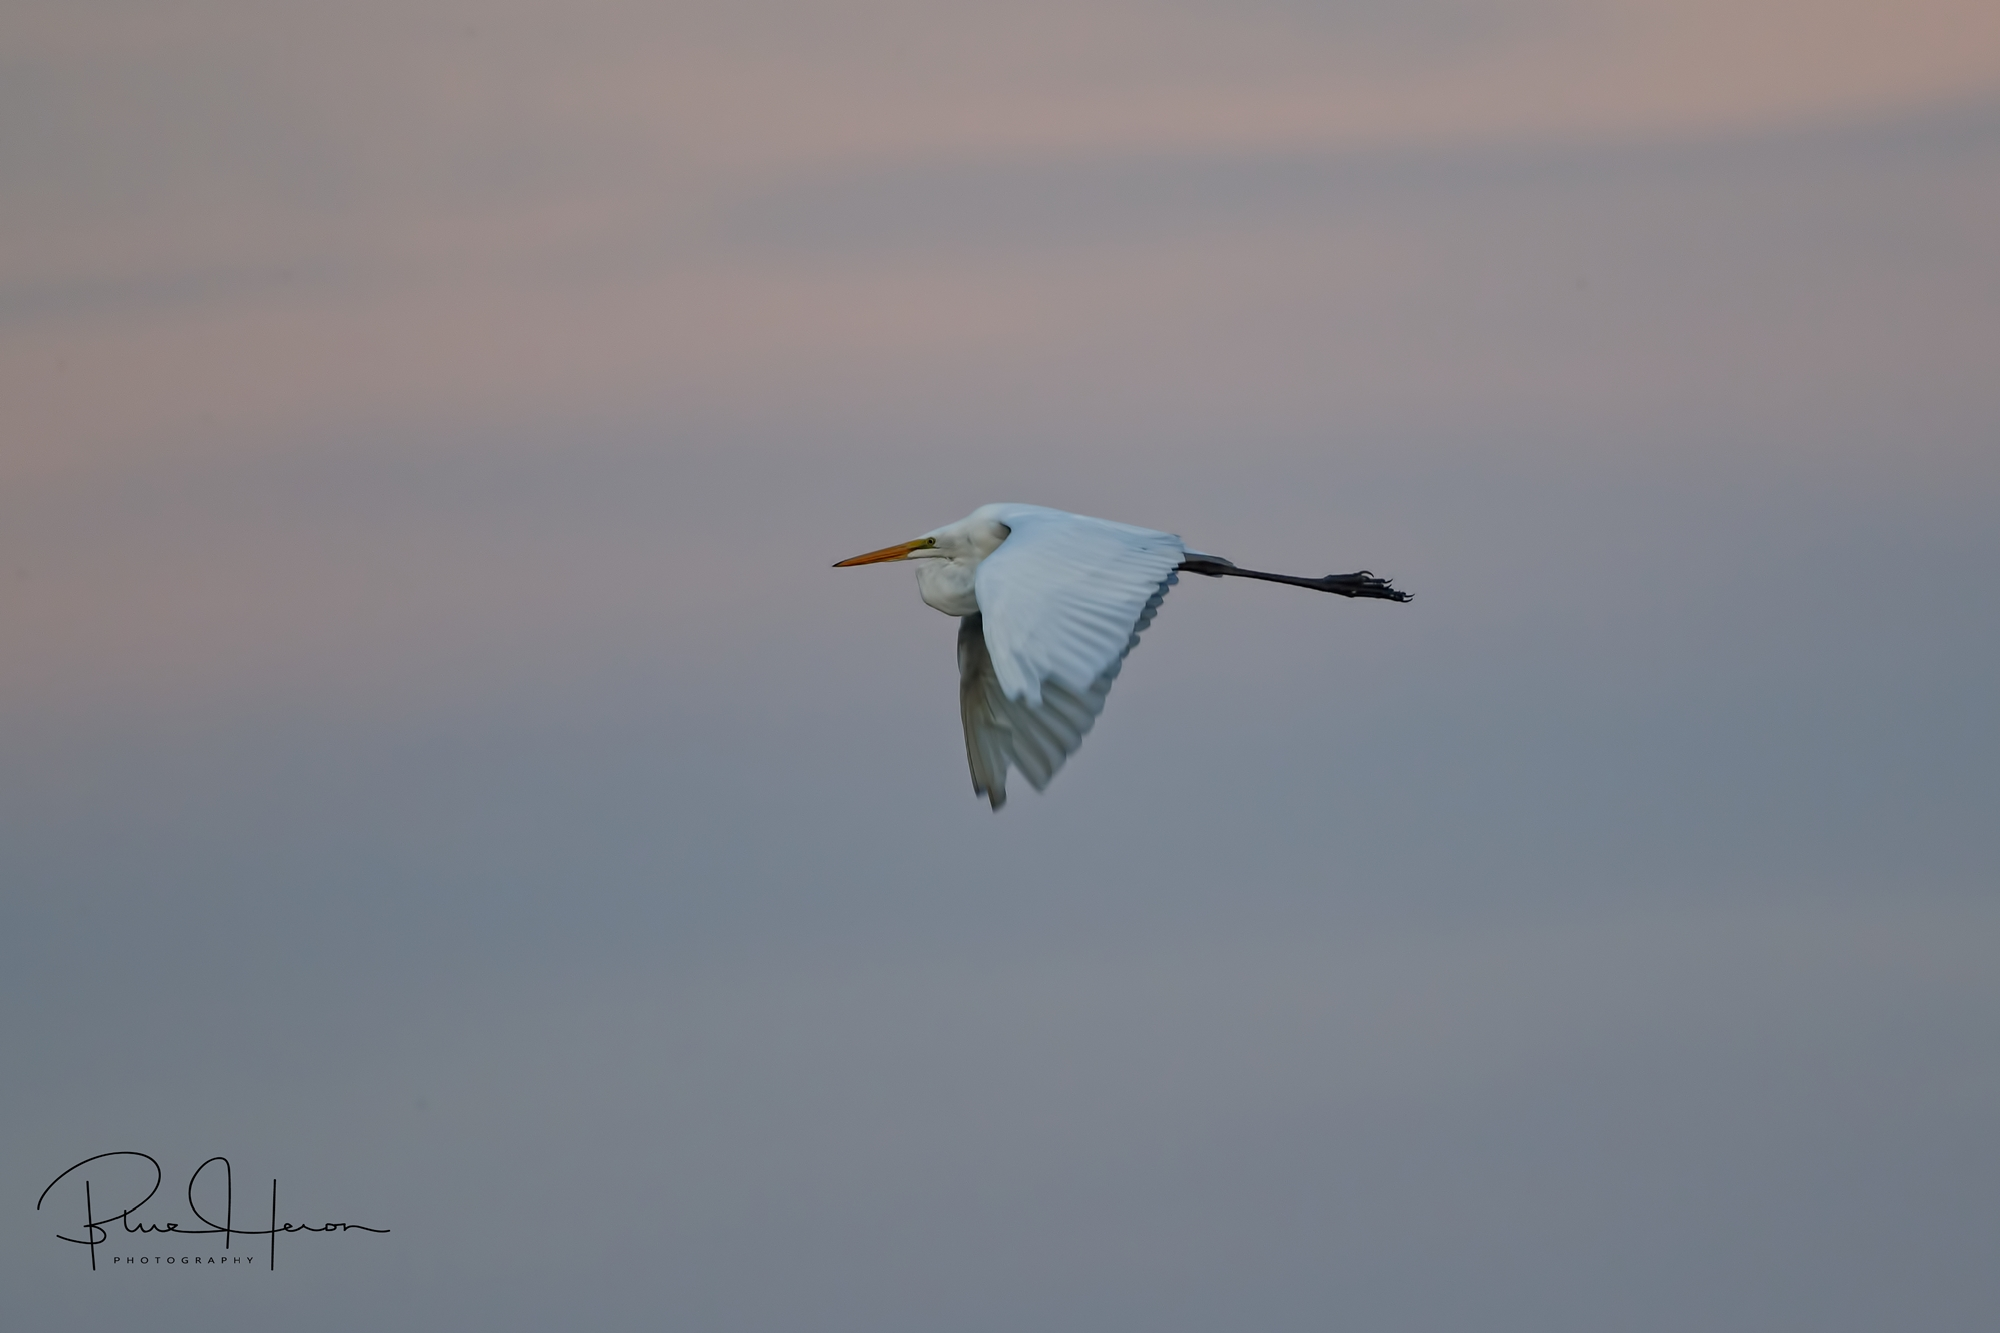 As the Egret wings by it captures the colors of the morning at 1/250th of a second